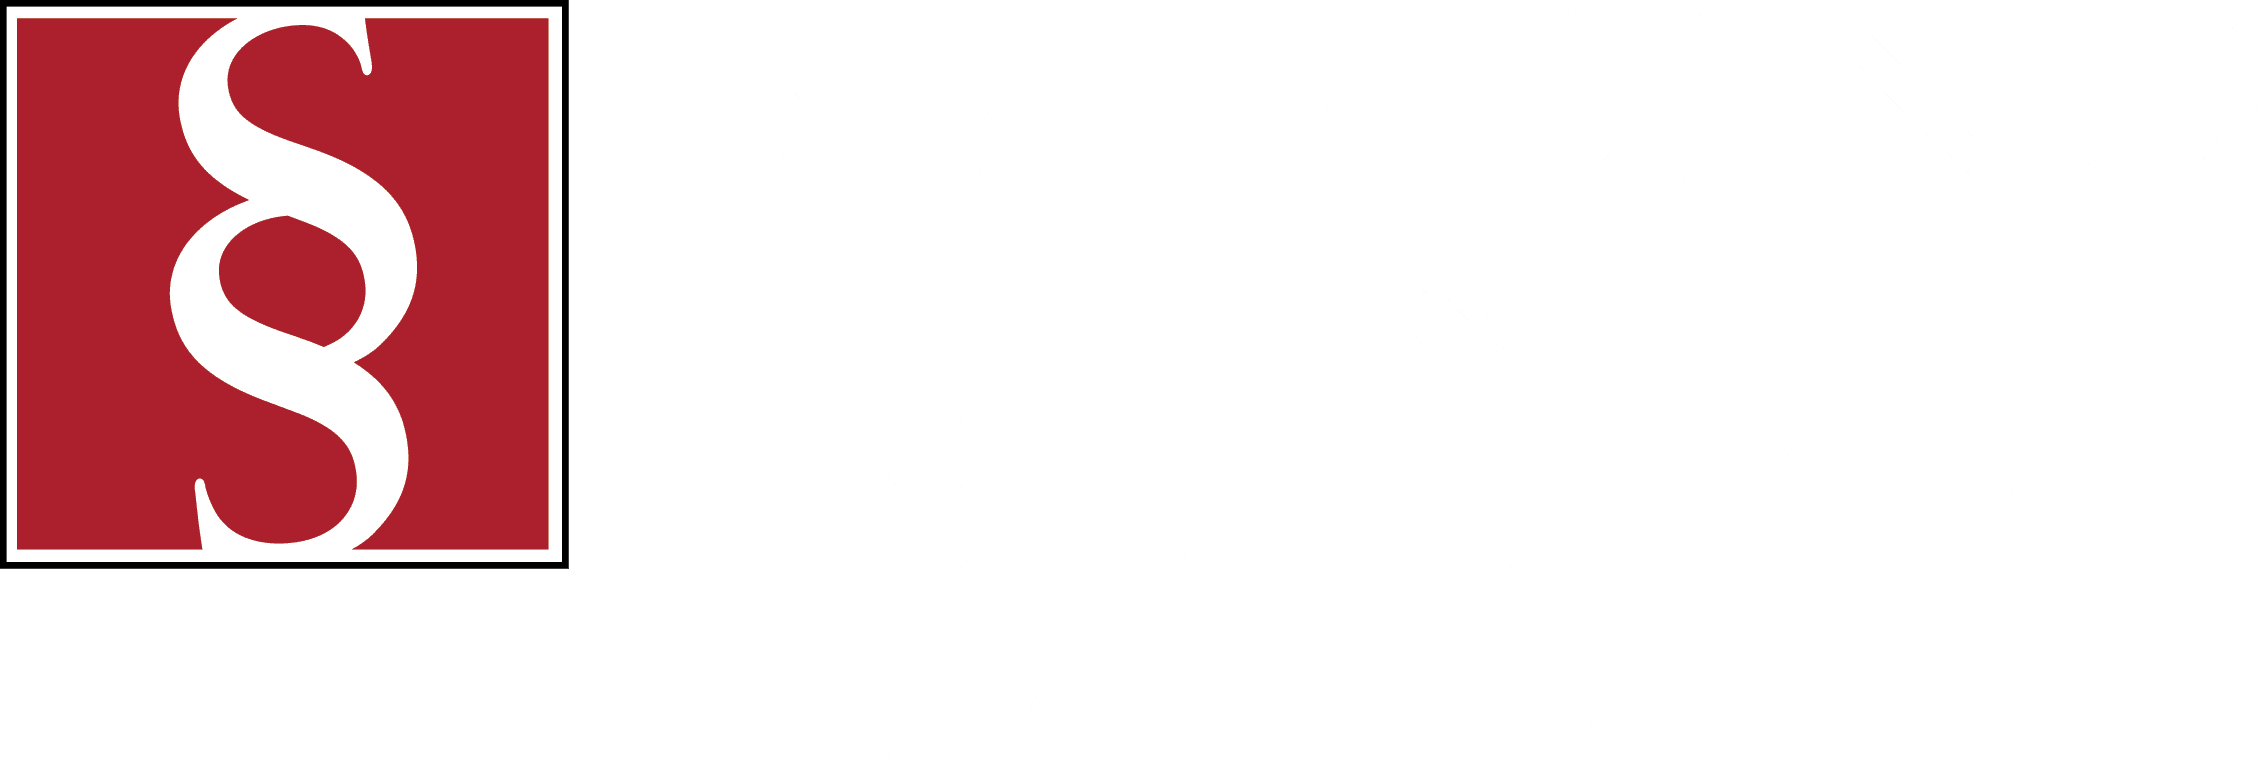 Results - Saladino & Schaaf - Paducah Injury Law Firm